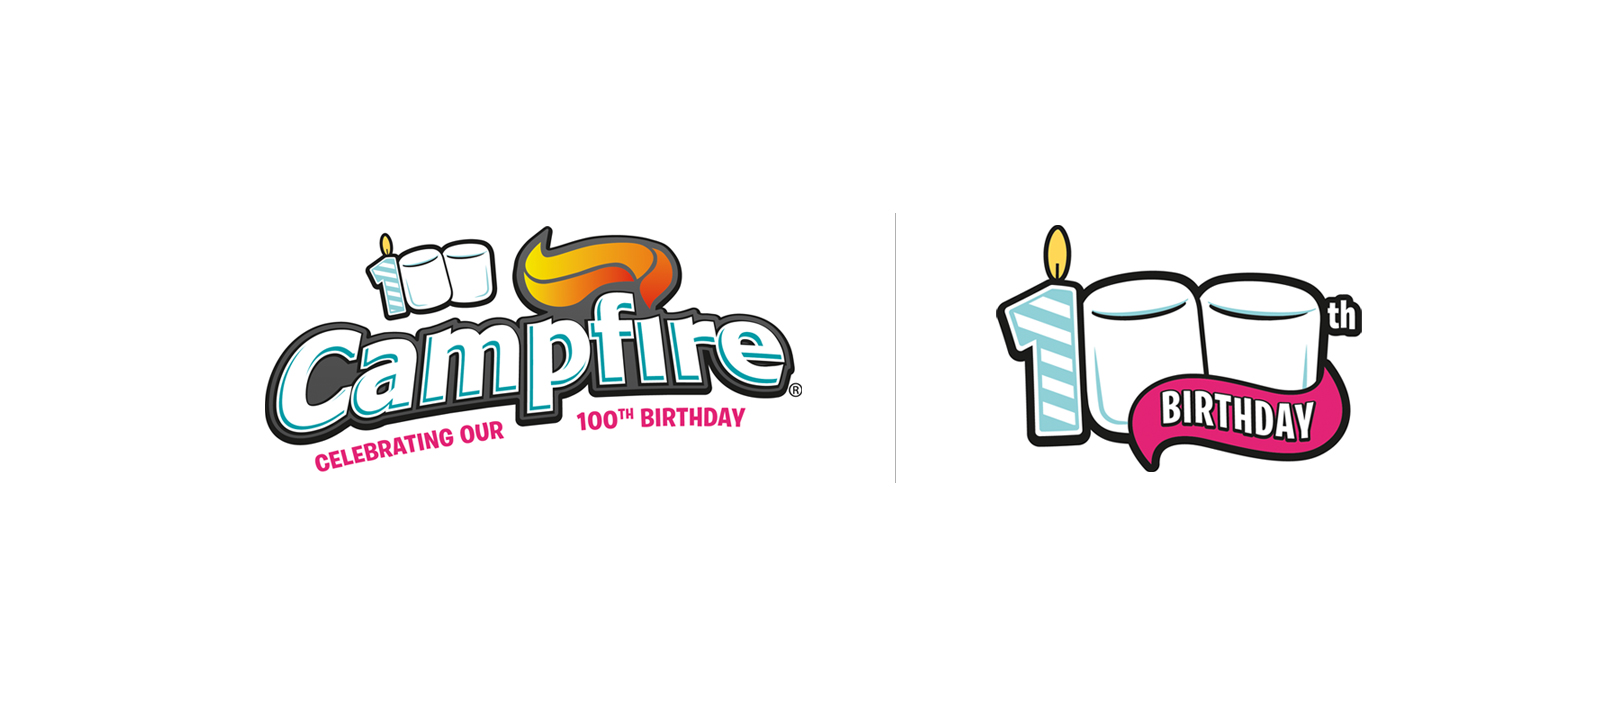 Campfire 100th birthday logos